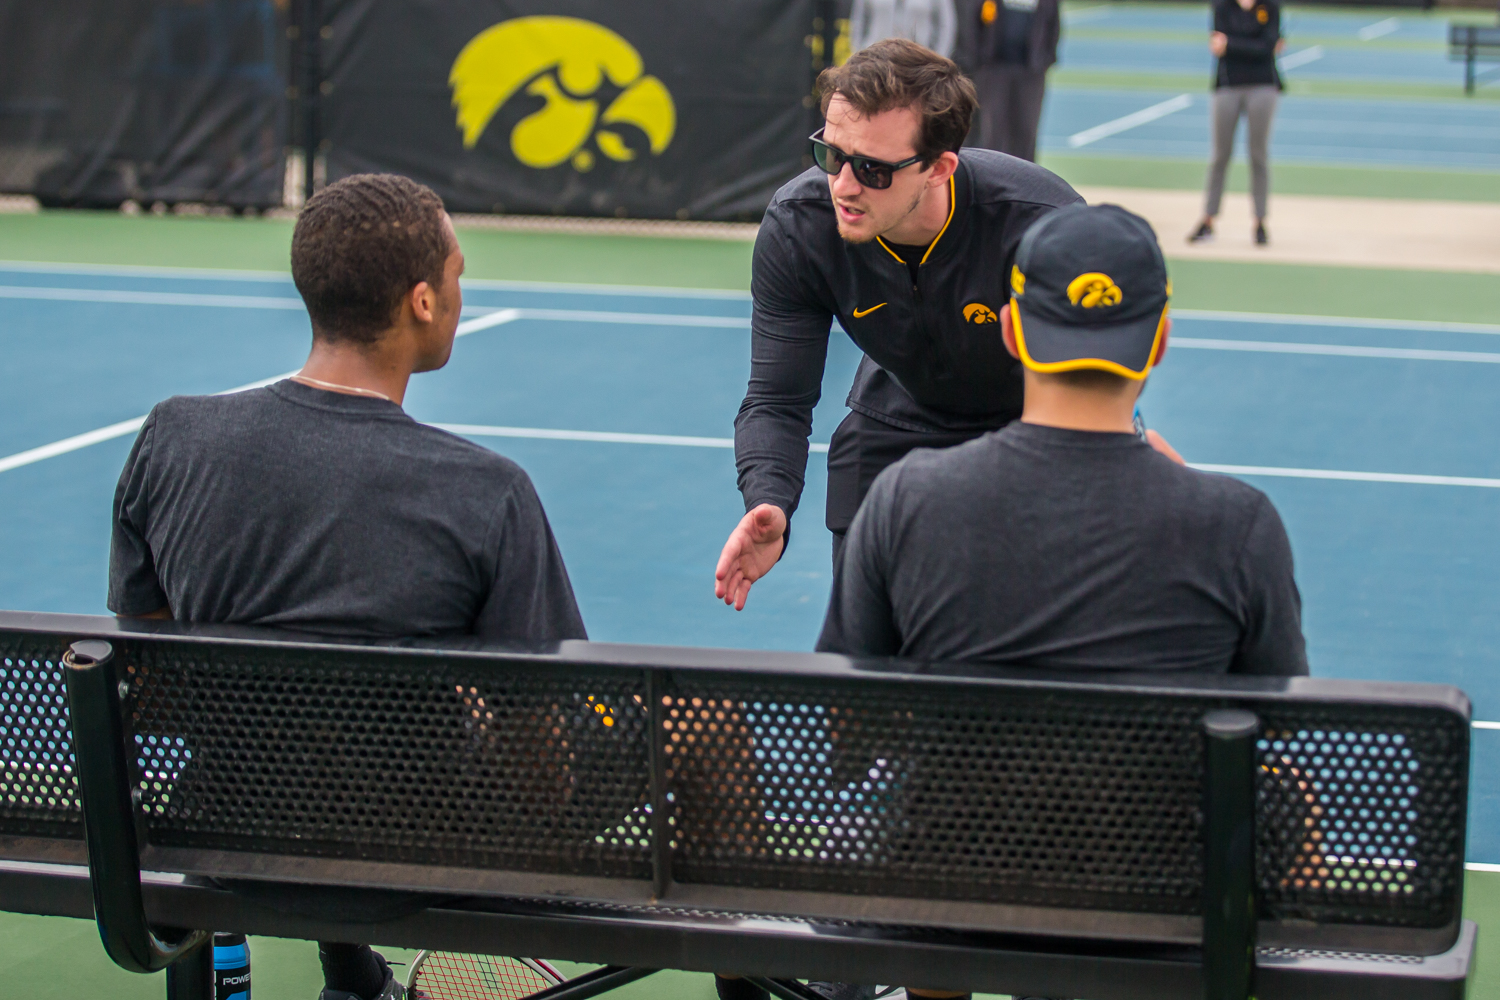 Iowa+assistant+coach+Joey+Manilla+talks+to+the+1-doubles+team+during+a+men%27s+tennis+match+between+Iowa+and+Ohio+State+at+the+HTRC+on+Sunday%2C+April+7%2C+2019.+The+Buckeyes+defeated+the+Hawkeyes%2C+4-1.